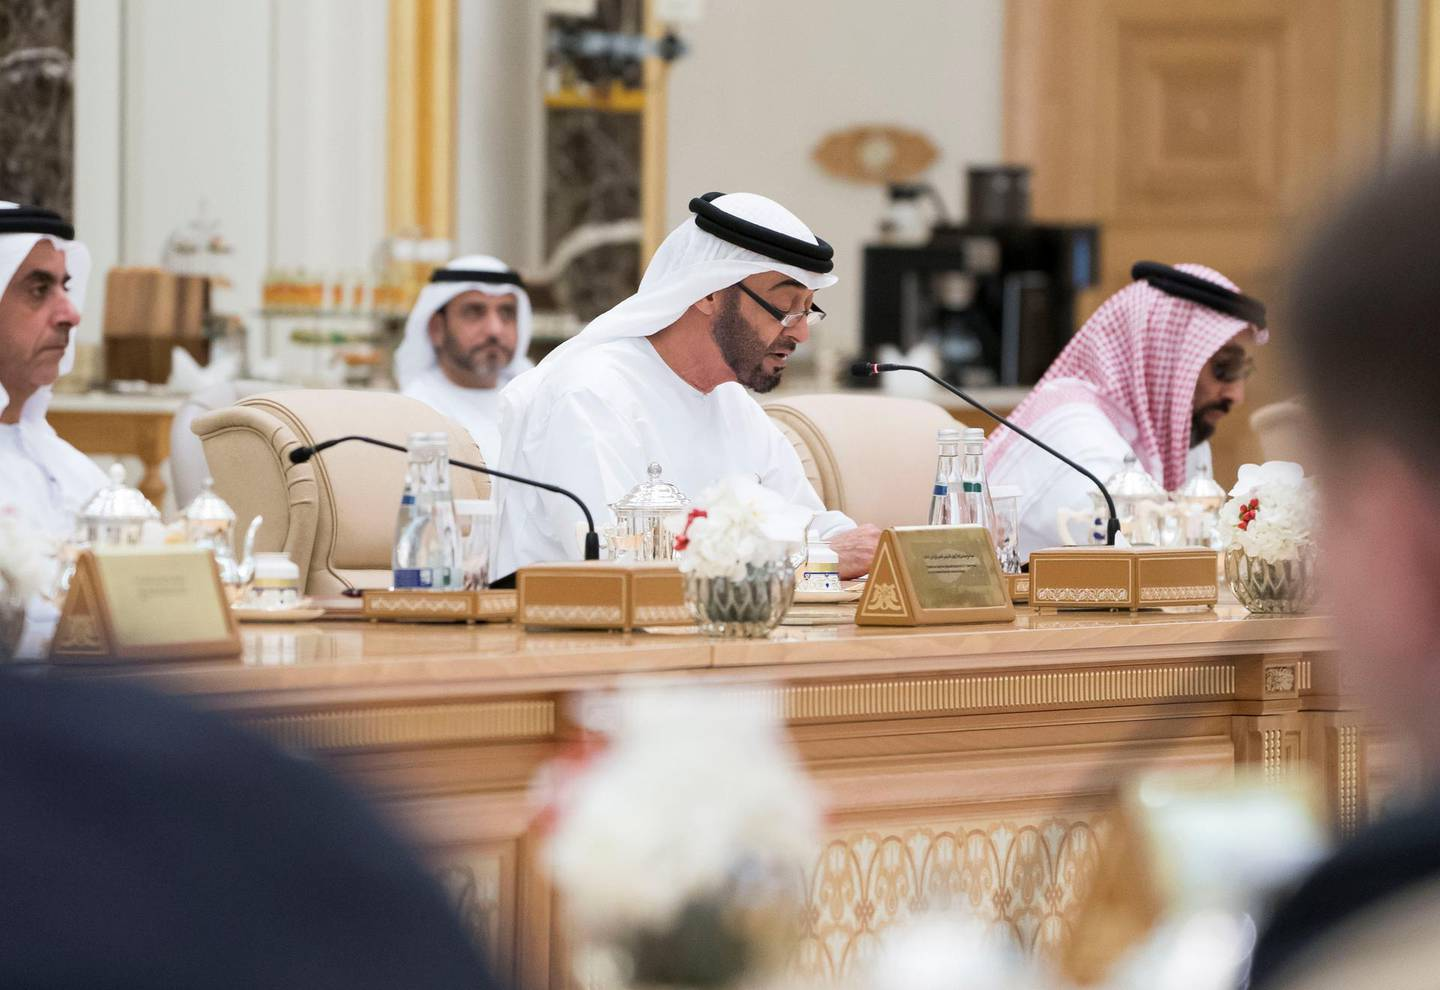 ABU DHABI, UNITED ARAB EMIRATES - October 15, 2019: HH Sheikh Mohamed bin Zayed Al Nahyan, Crown Prince of Abu Dhabi and Deputy Supreme Commander of the UAE Armed Forces (C) attends an economic meeting with HE Vladimir Putin Vladimirovich, President of Russia,(not seen)  during a state visit reception at Qasr Al Watan.   ( Mohamed Al Hammadi / Ministry of Presidential Affairs ) ---